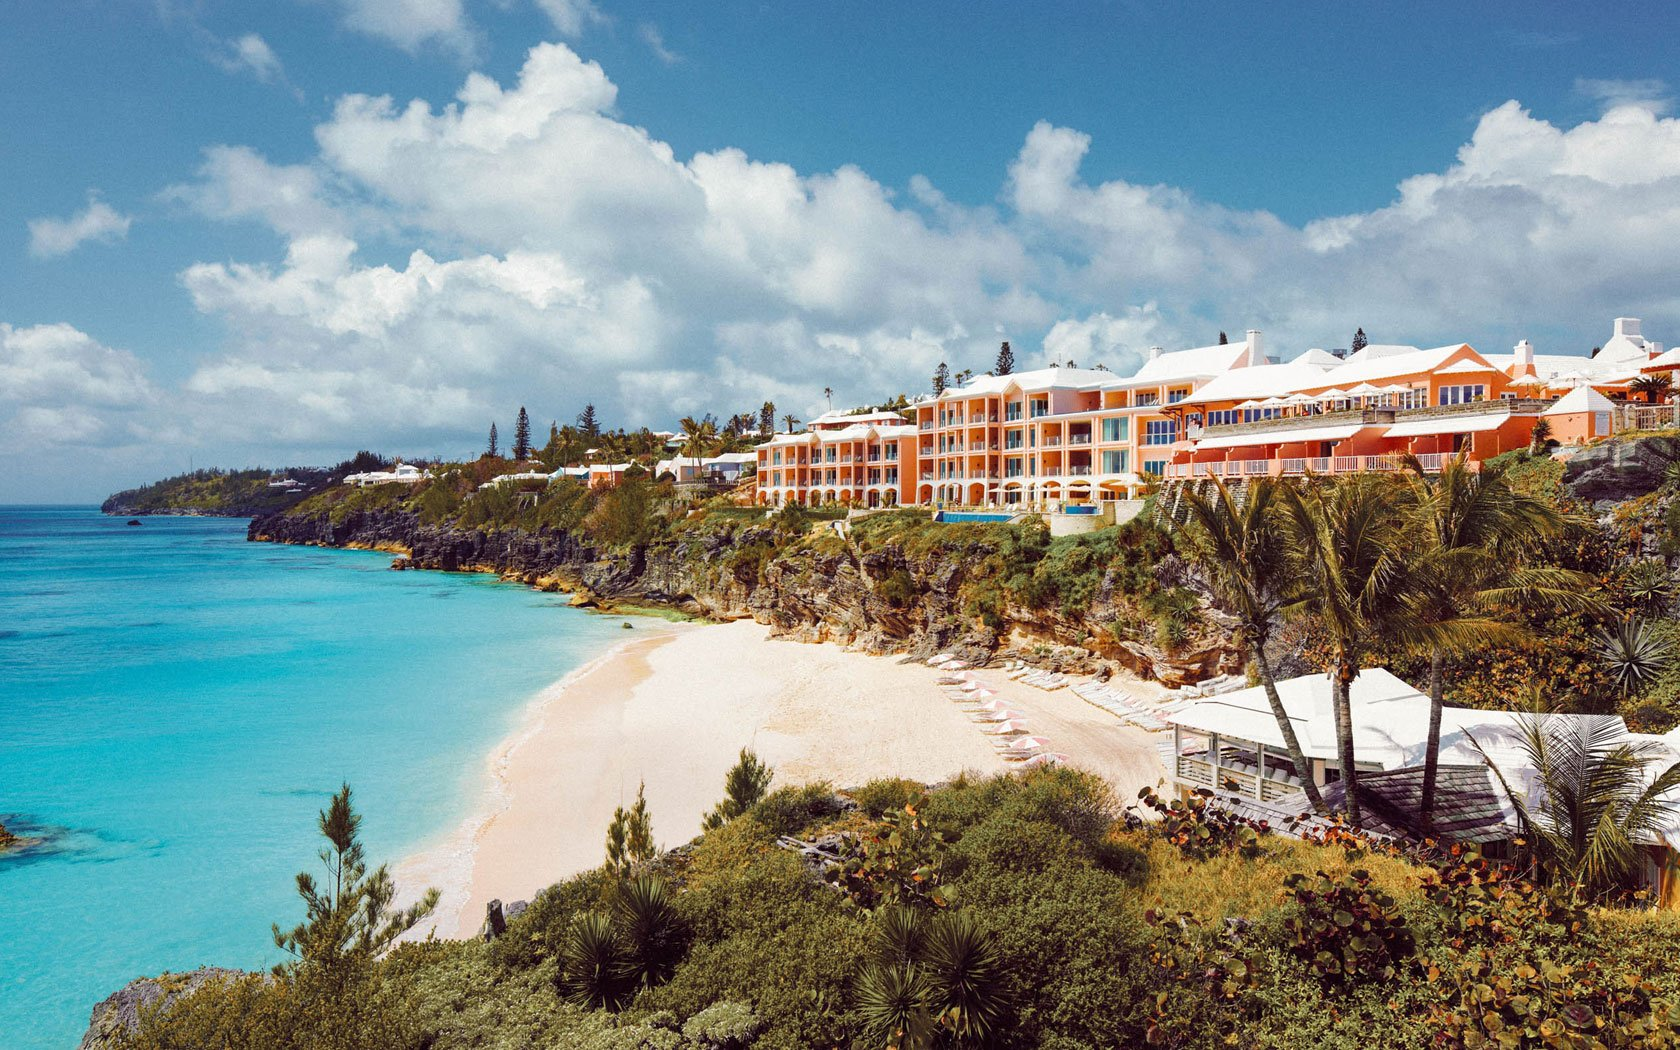 america's cup 2017: where to stay, play and eat in bermuda